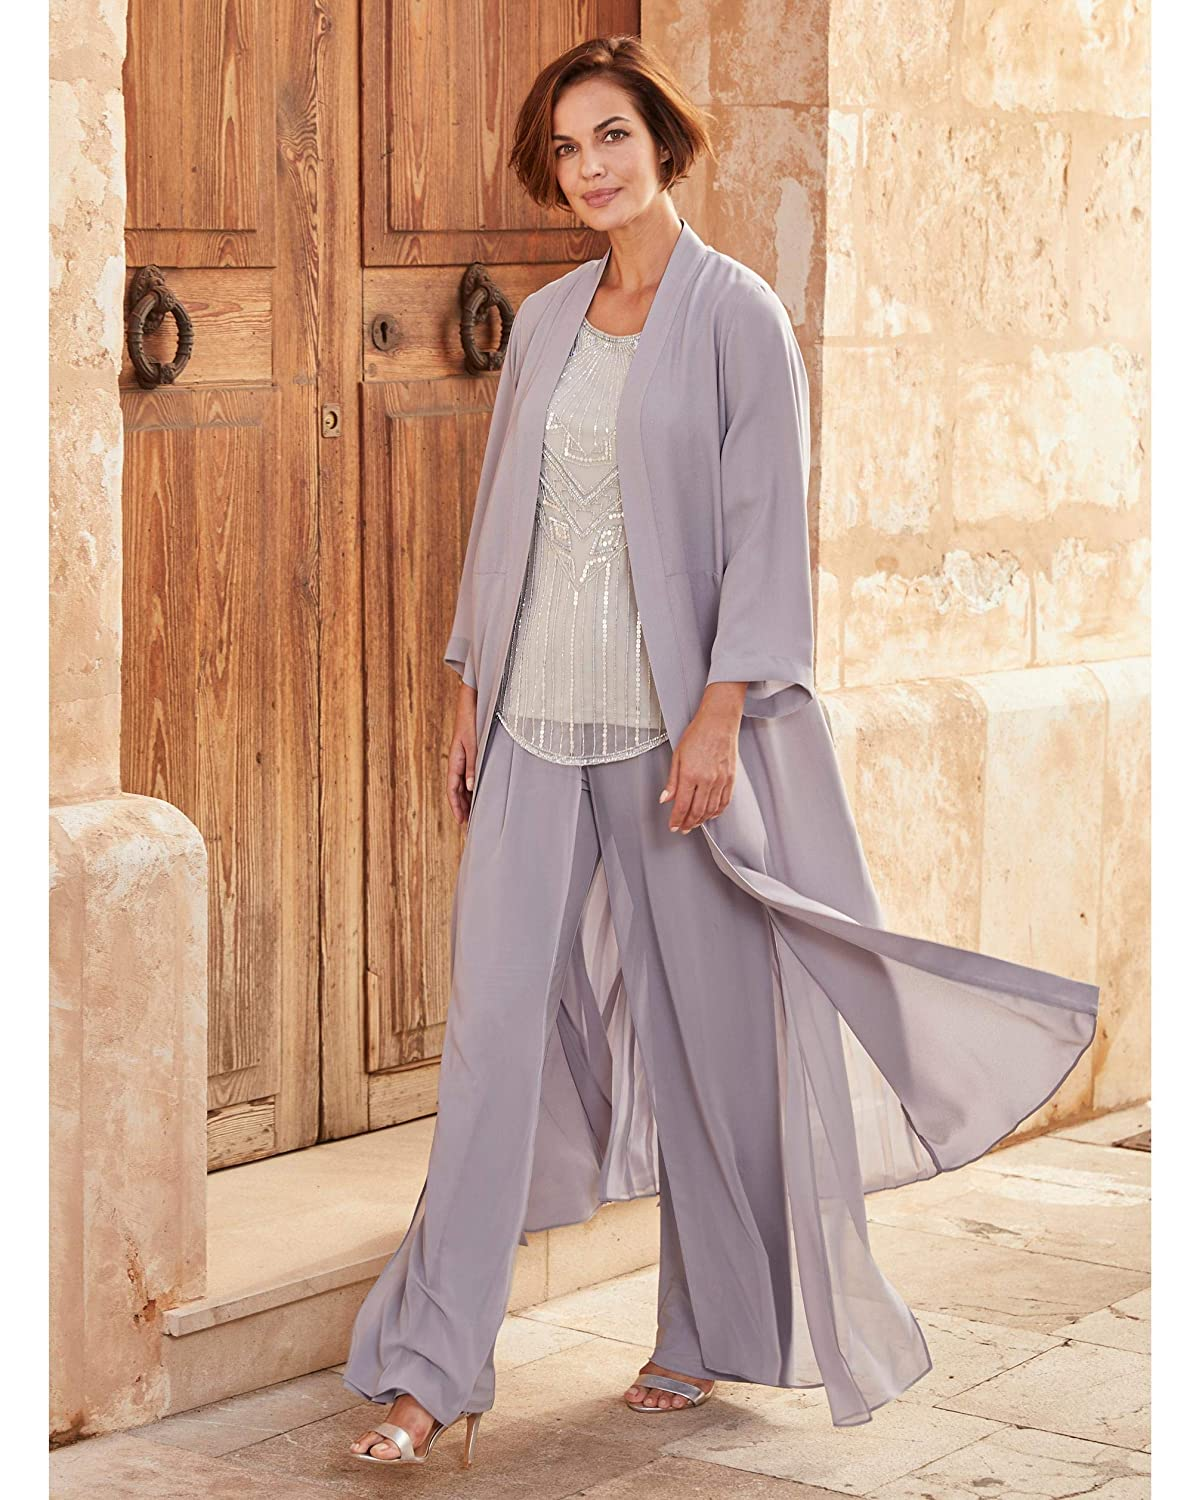 Vintage 1920s Dresses – Where to Buy JD WILLIAMS Womens Joanna Hope Overlay Palazzo Trousers  AT vintagedancer.com